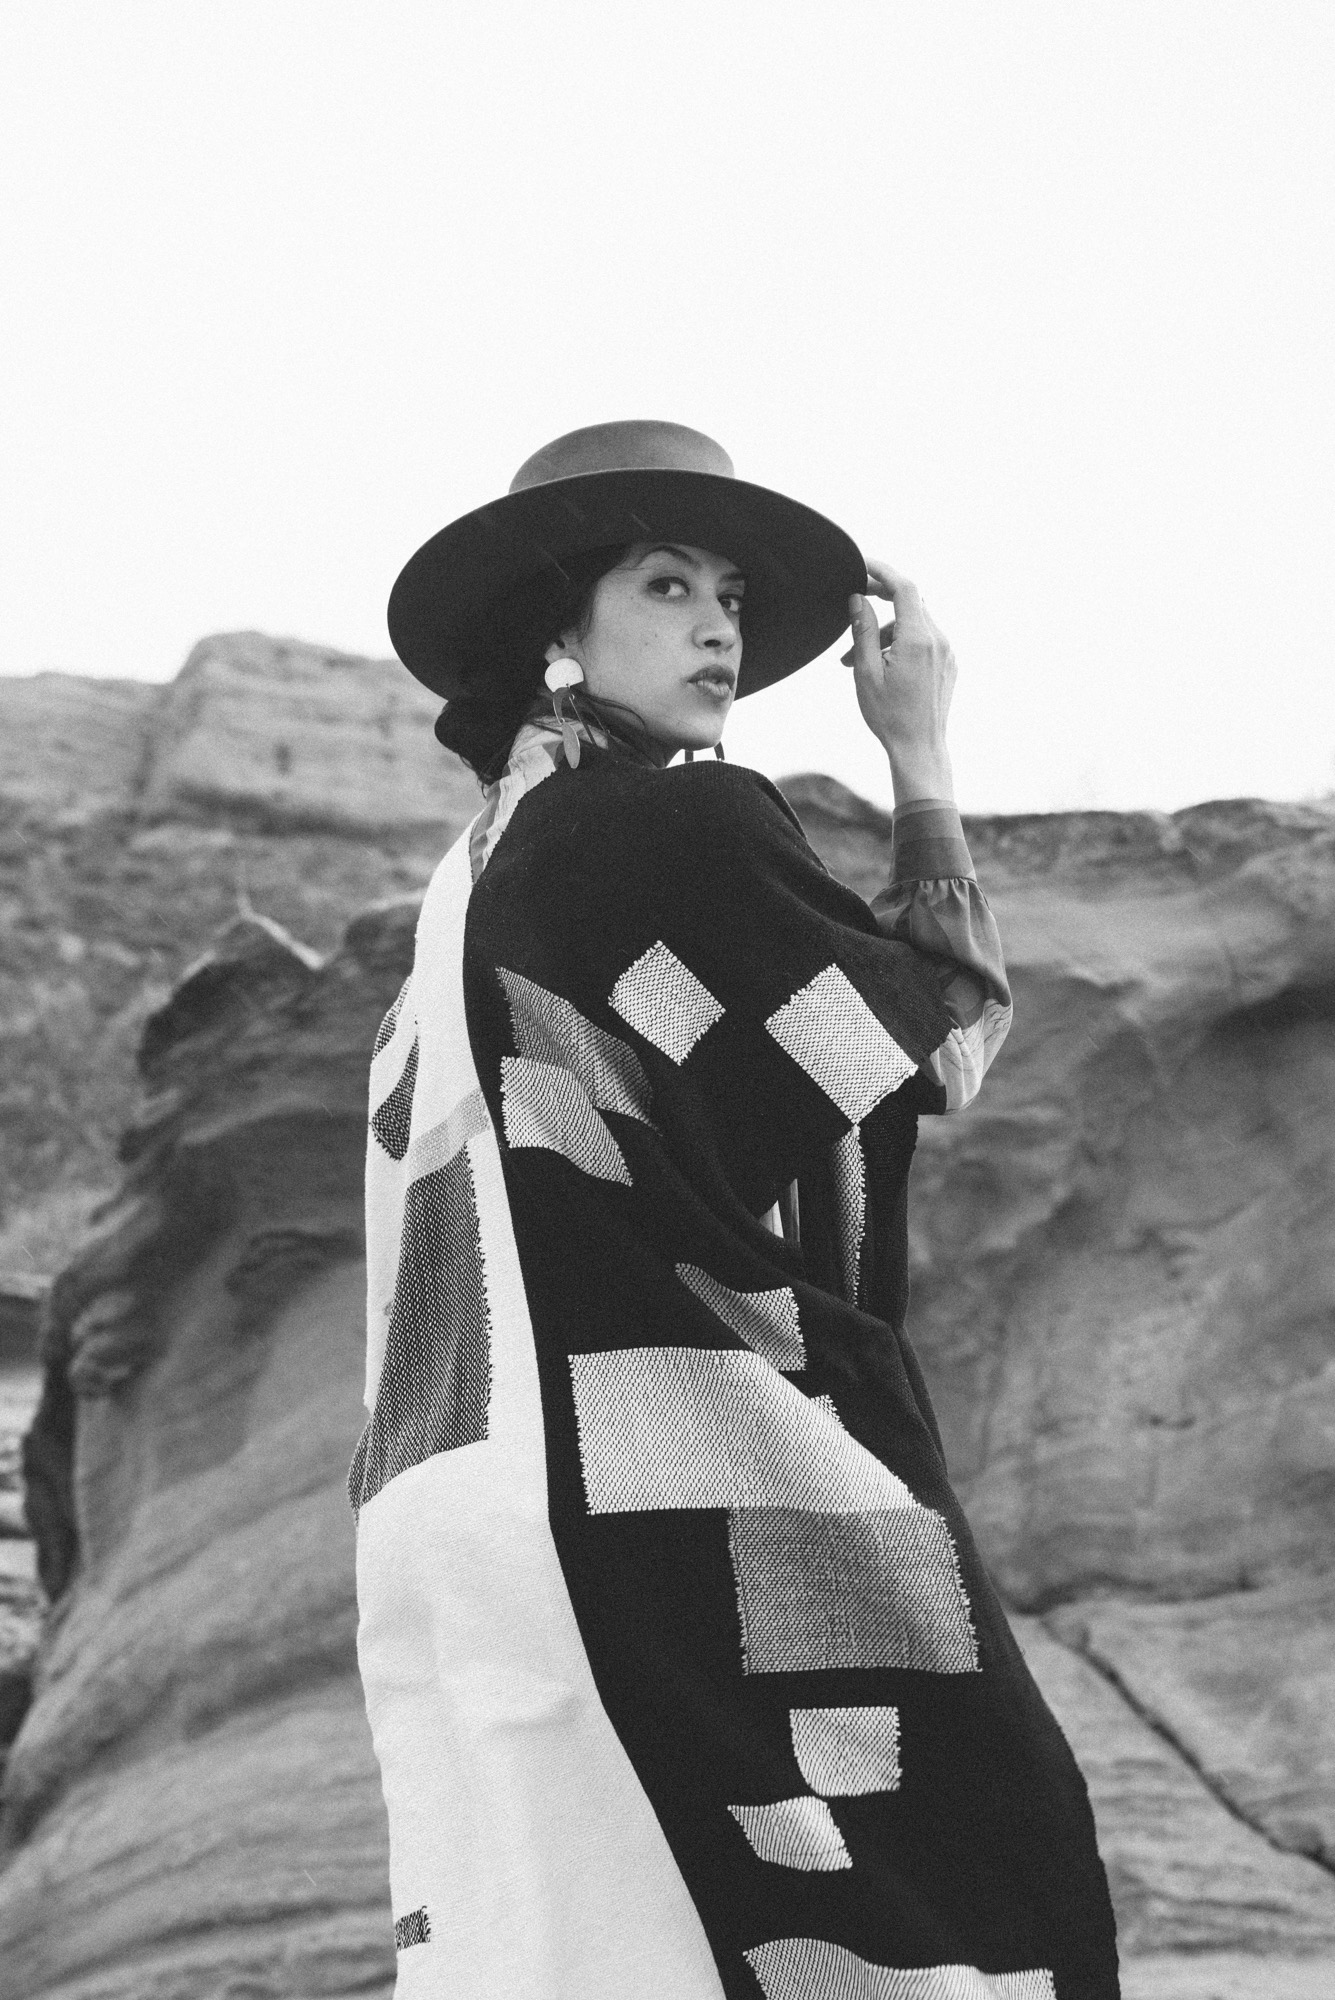 Image by Ashley Gordon